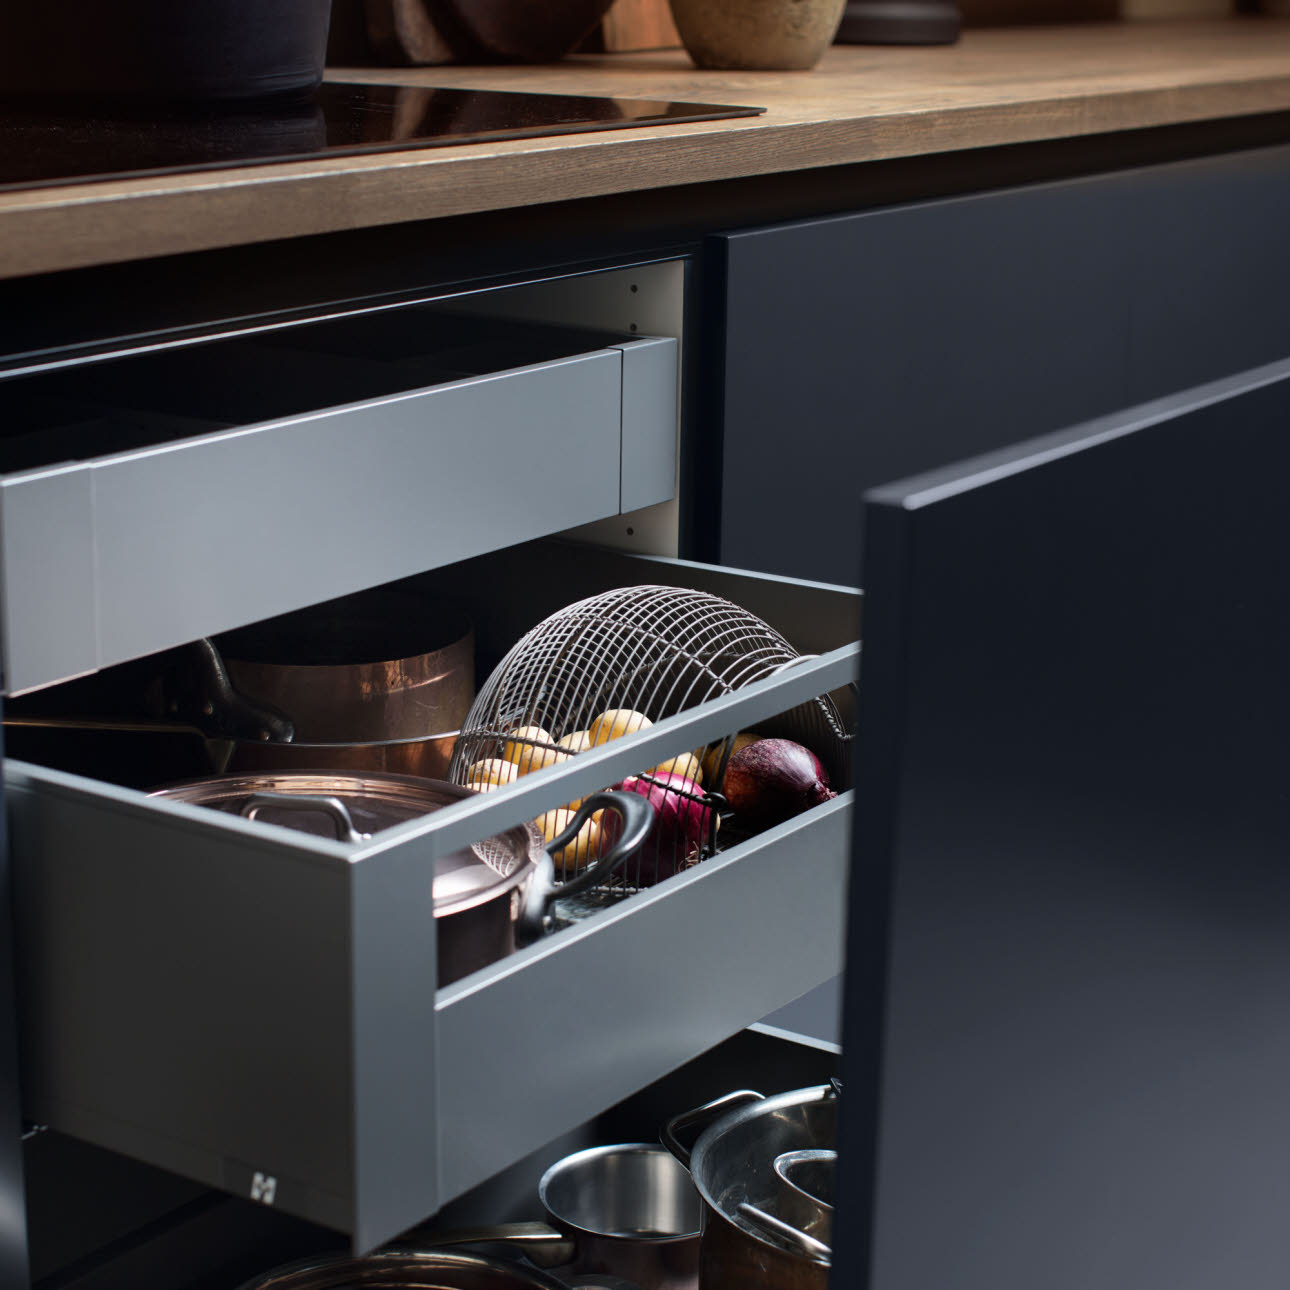 kitchen drawers. Legra Drawers Have High Sides To Prevent Items From Falling Out  Choosing Kitchen Which Should I Choose HTH